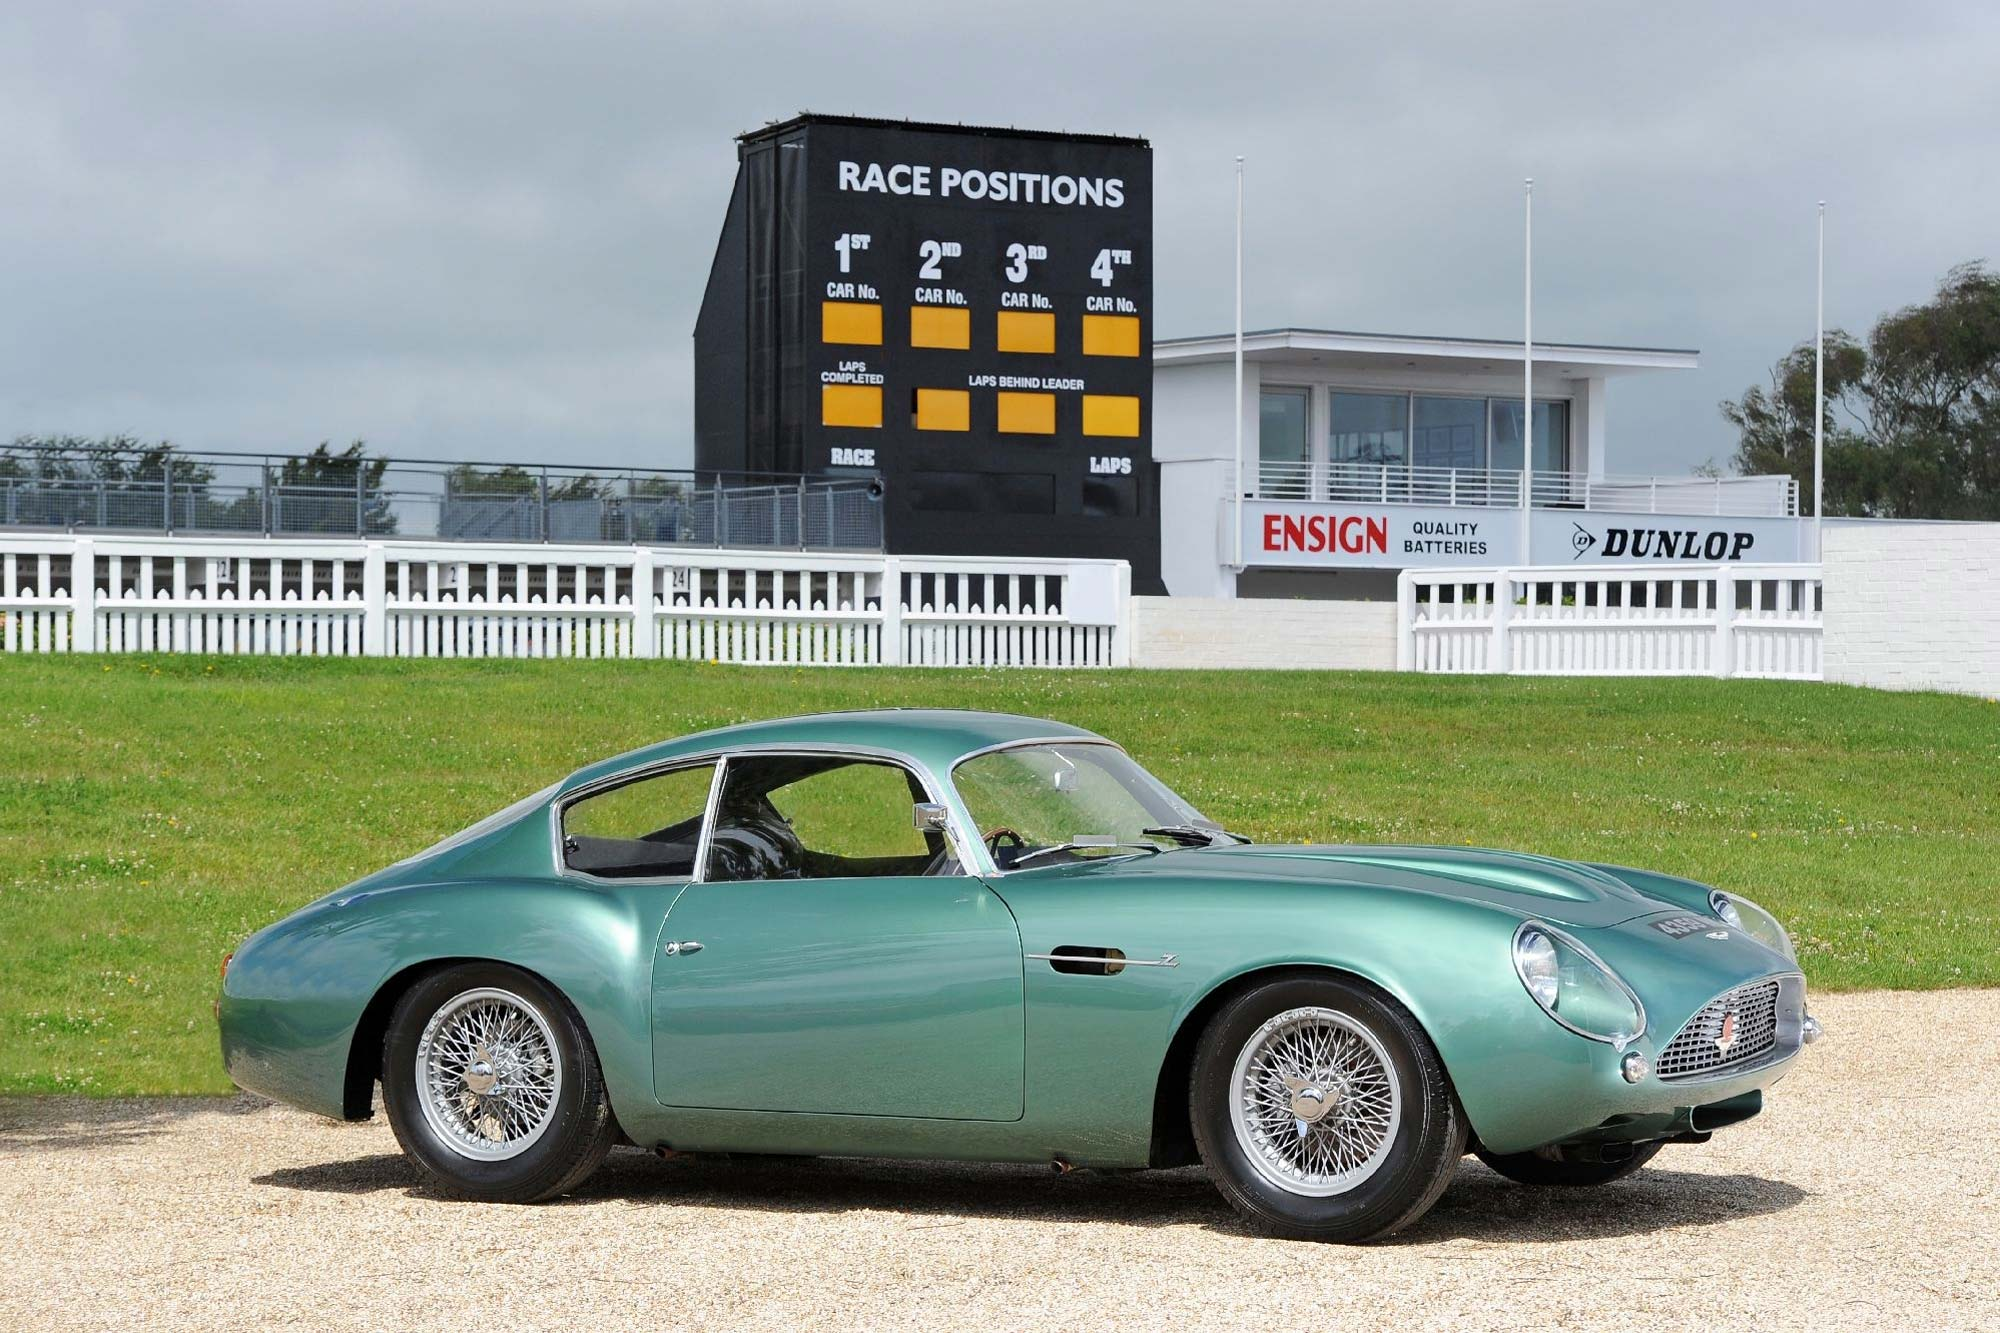 Aston Martin DB GT Zagato Previously Sold FISKENS - Aston martin 1970 for sale